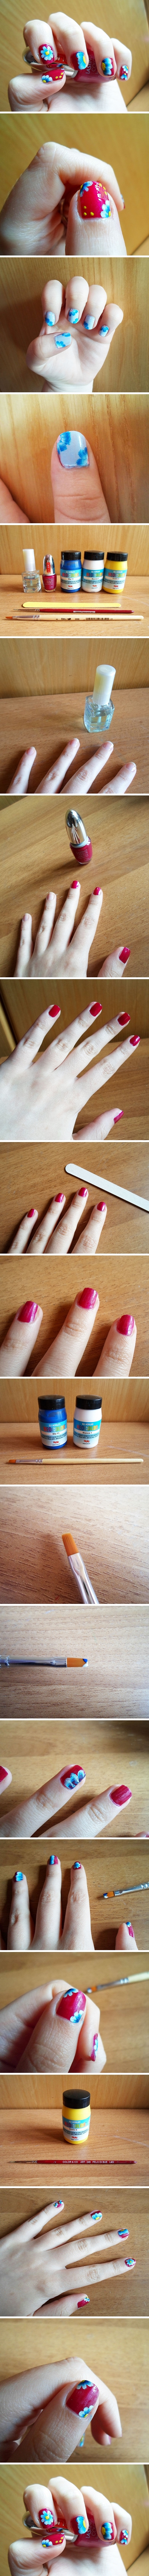 how to make Spring Floral Nail art step by step DIY tutorial instructions